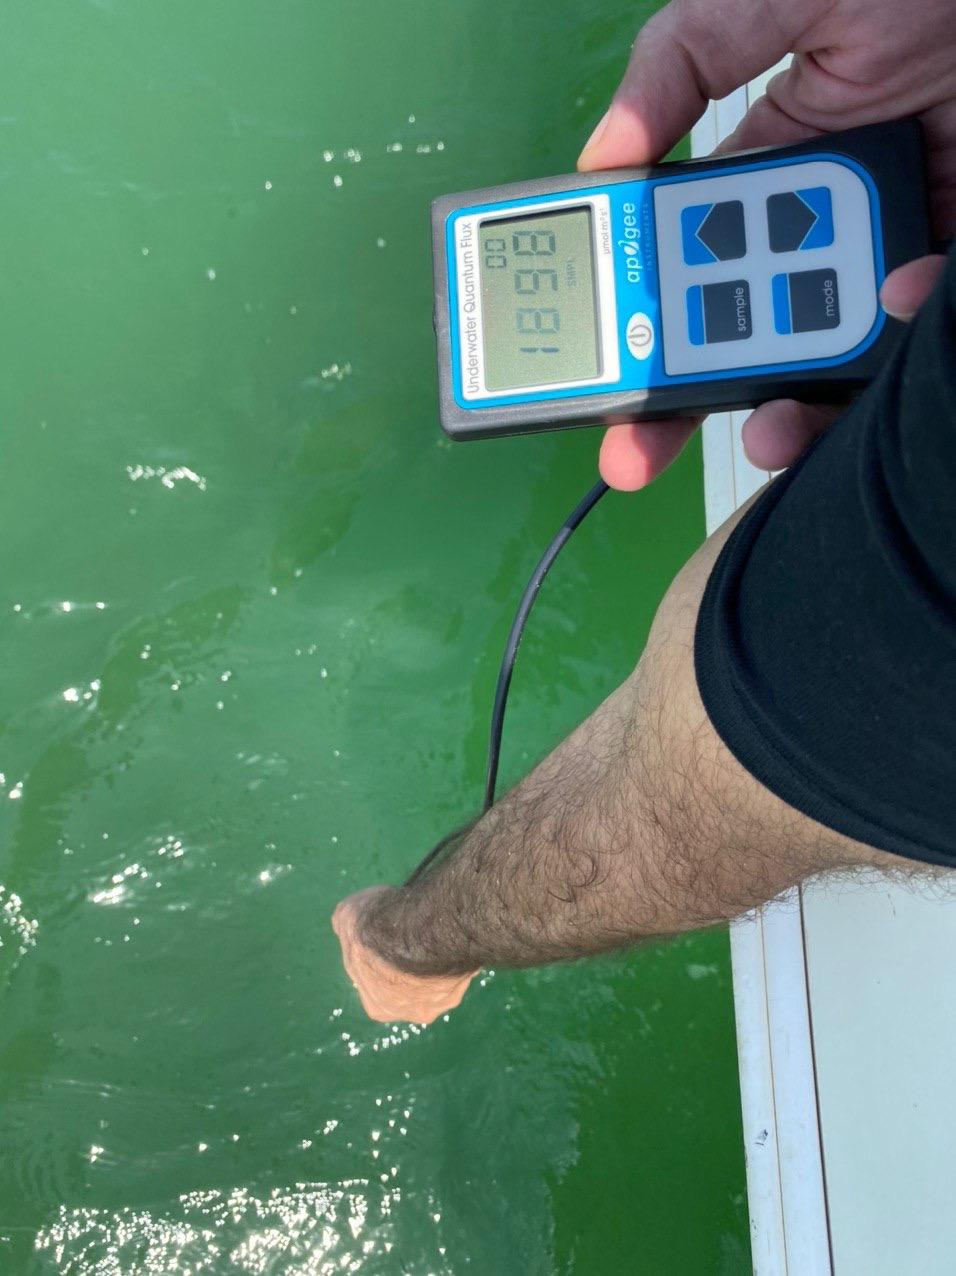 PAR measurements with MQ-510 underwater quantum meter